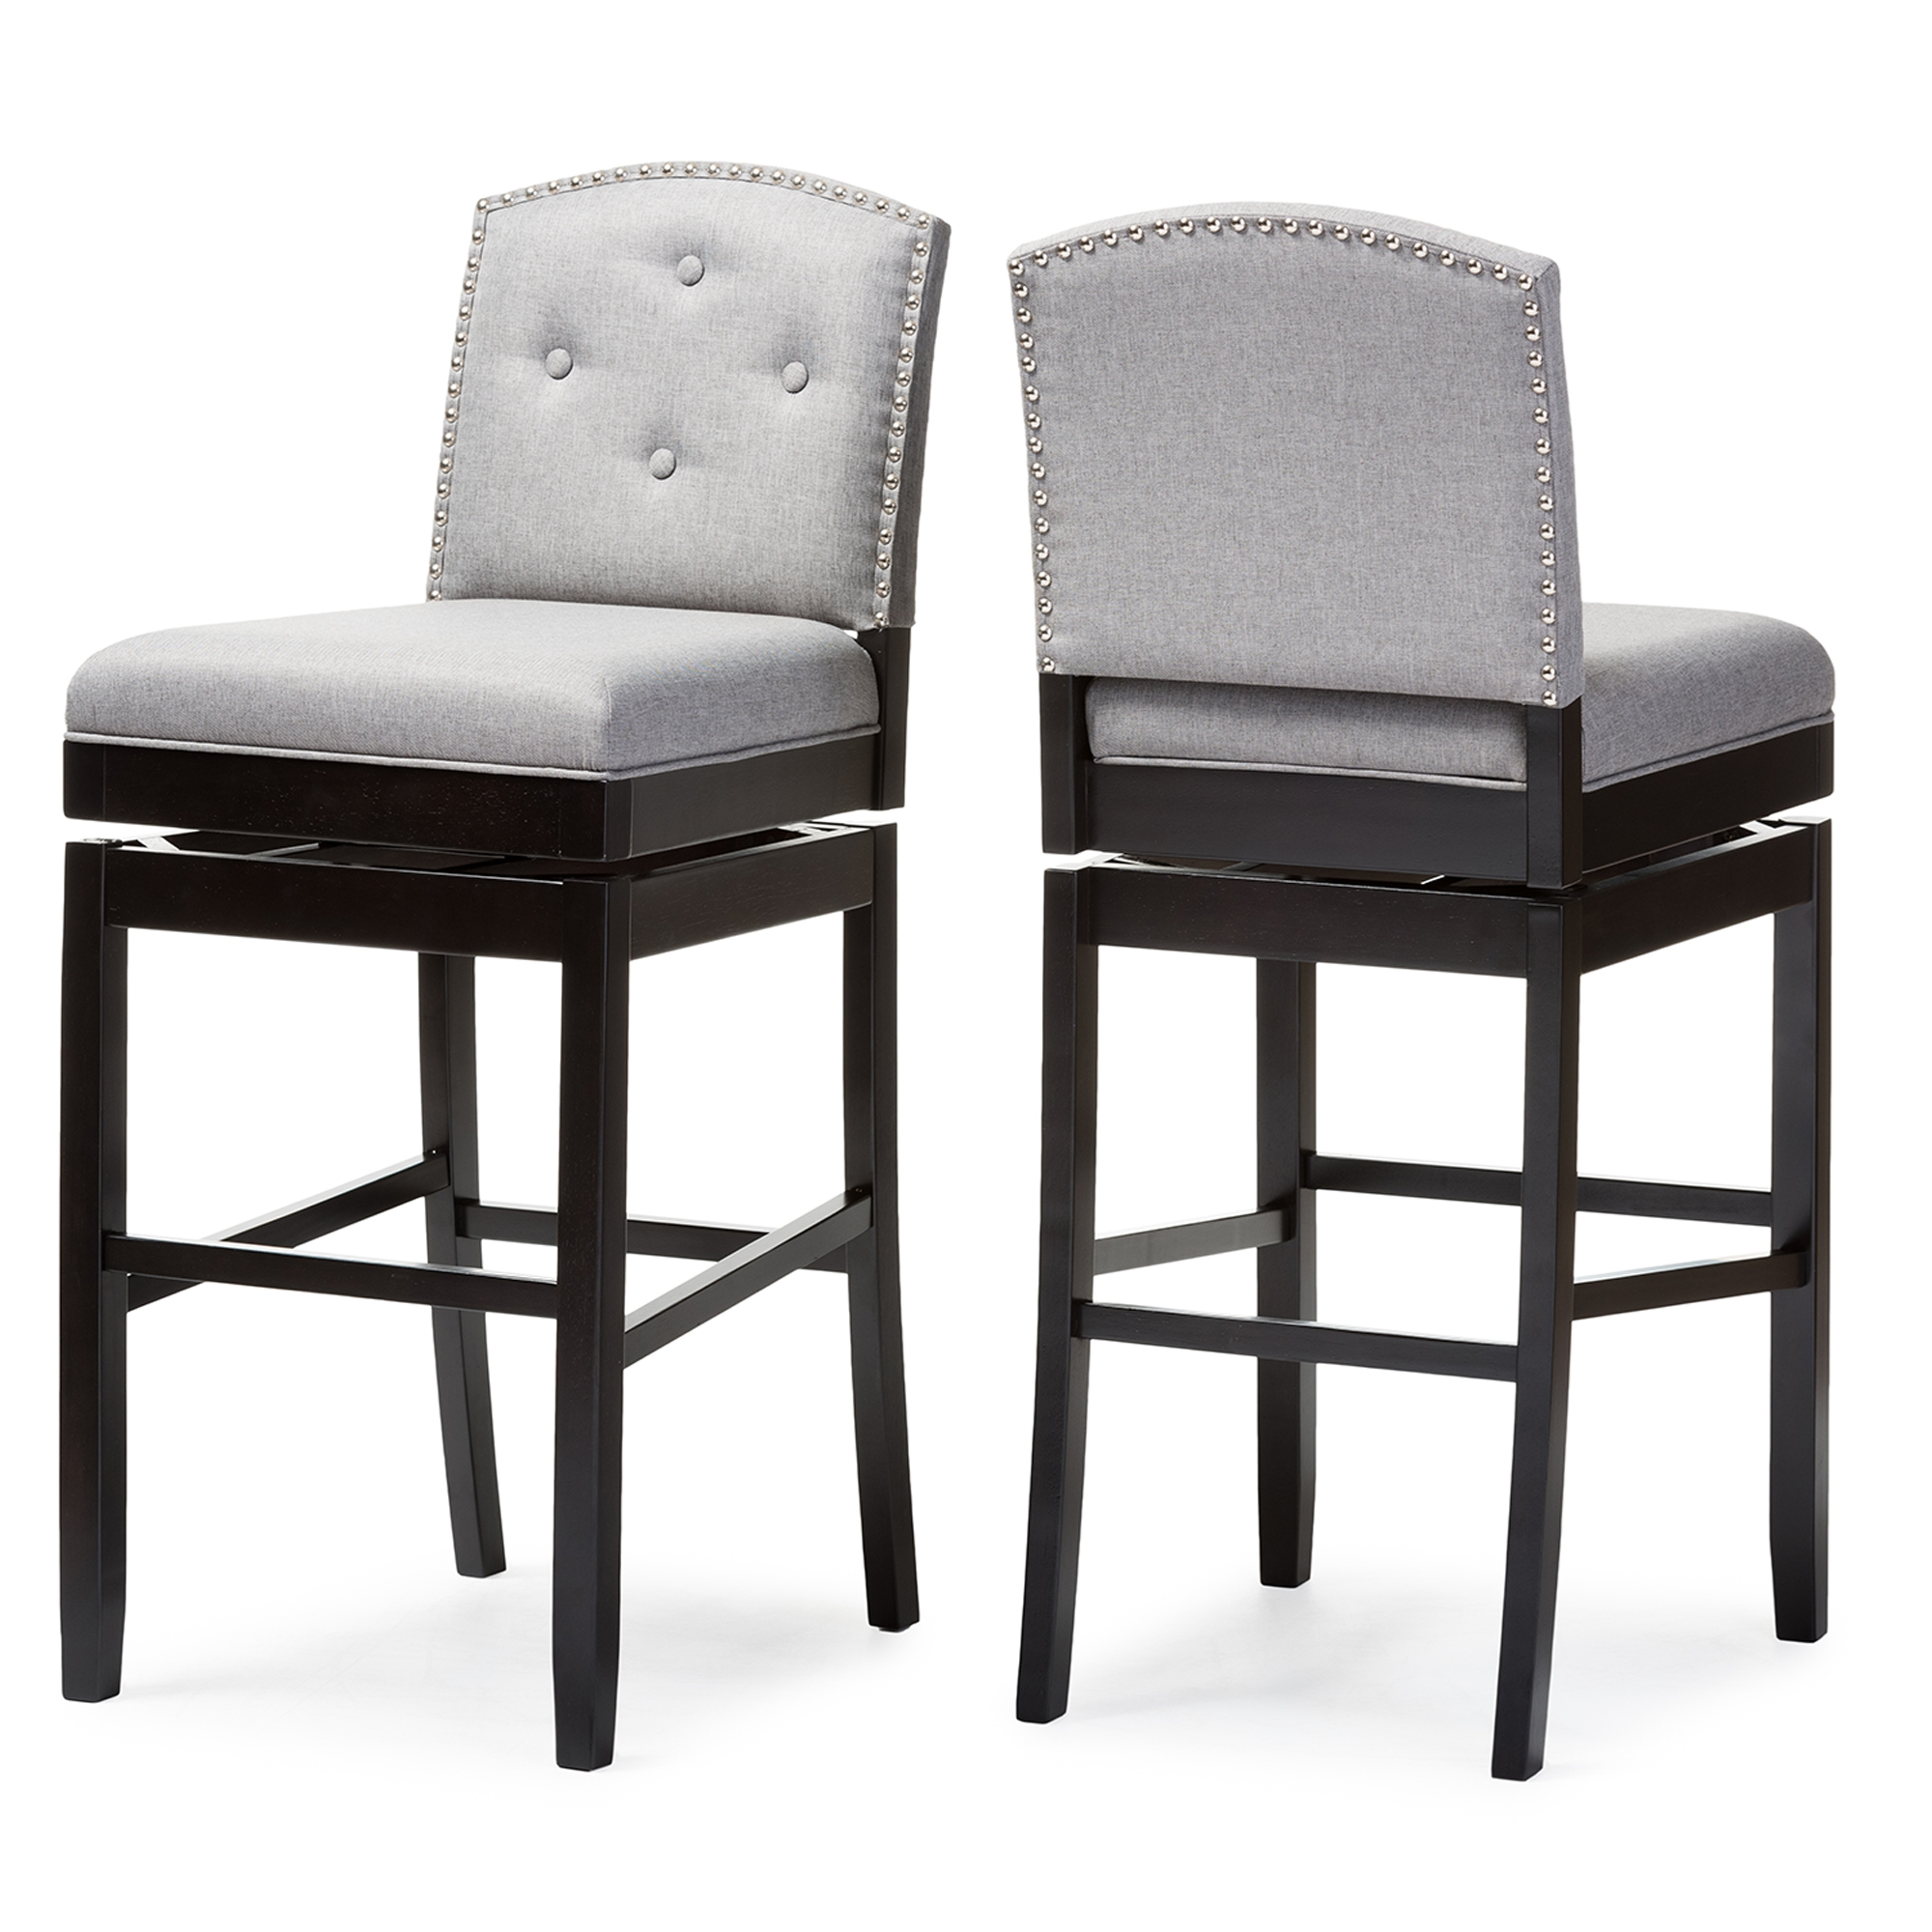 ... Baxton Studio Ginaro Modern And Contemporary Grey Fabric Button Tufted  Upholstered Swivel Bar Stool ...